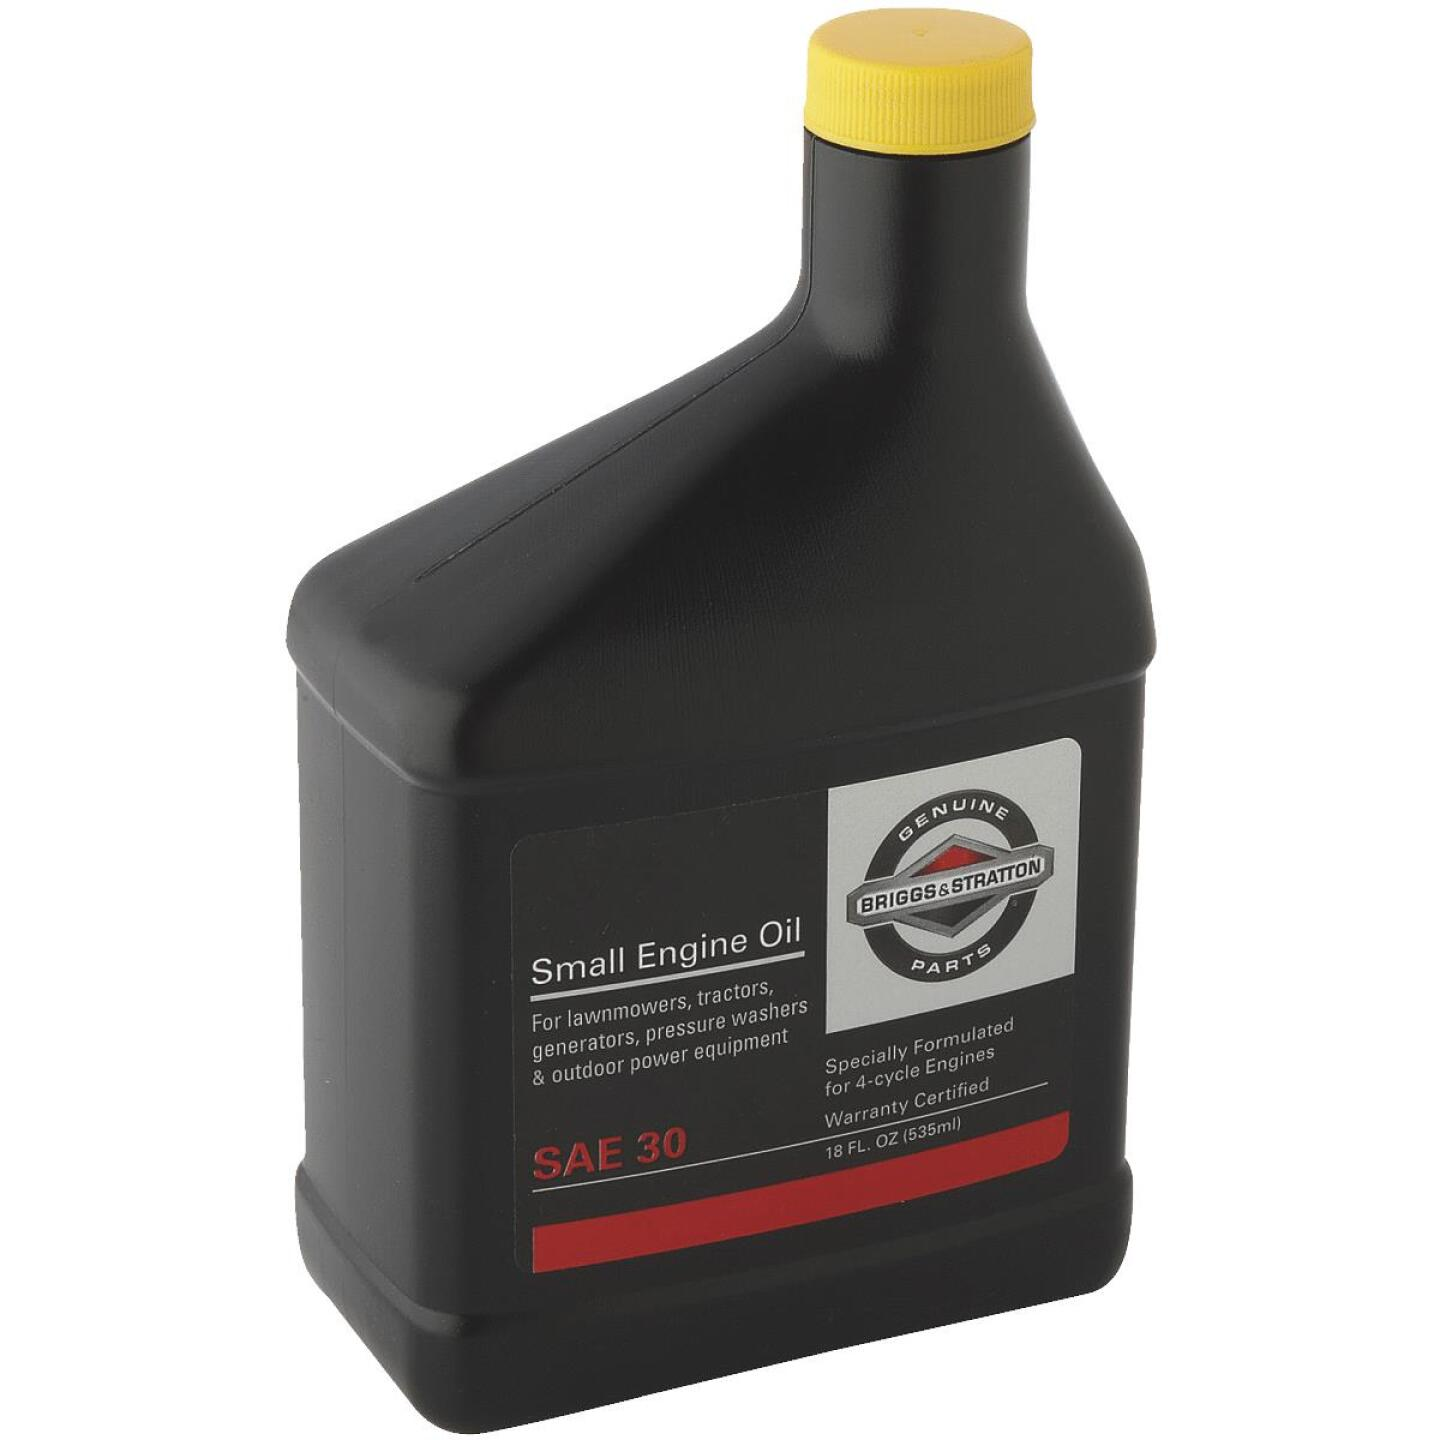 Briggs & Stratton 30W 18 oz 4-Cycle Motor Oil Image 1